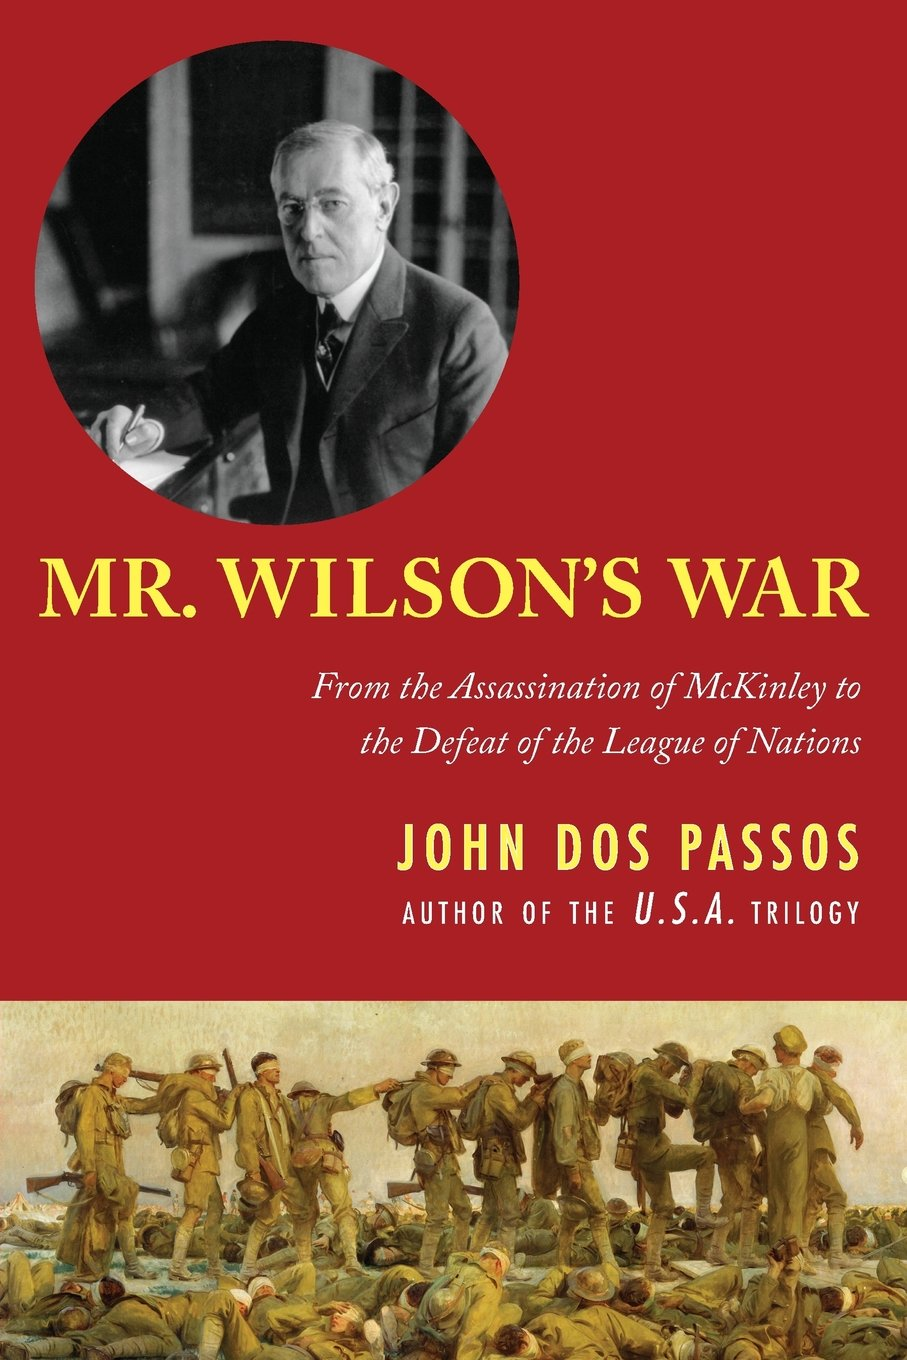 Read Online Mr. Wilson's War: From the Assassination of McKinley to the Defeat of the League of Nations ebook